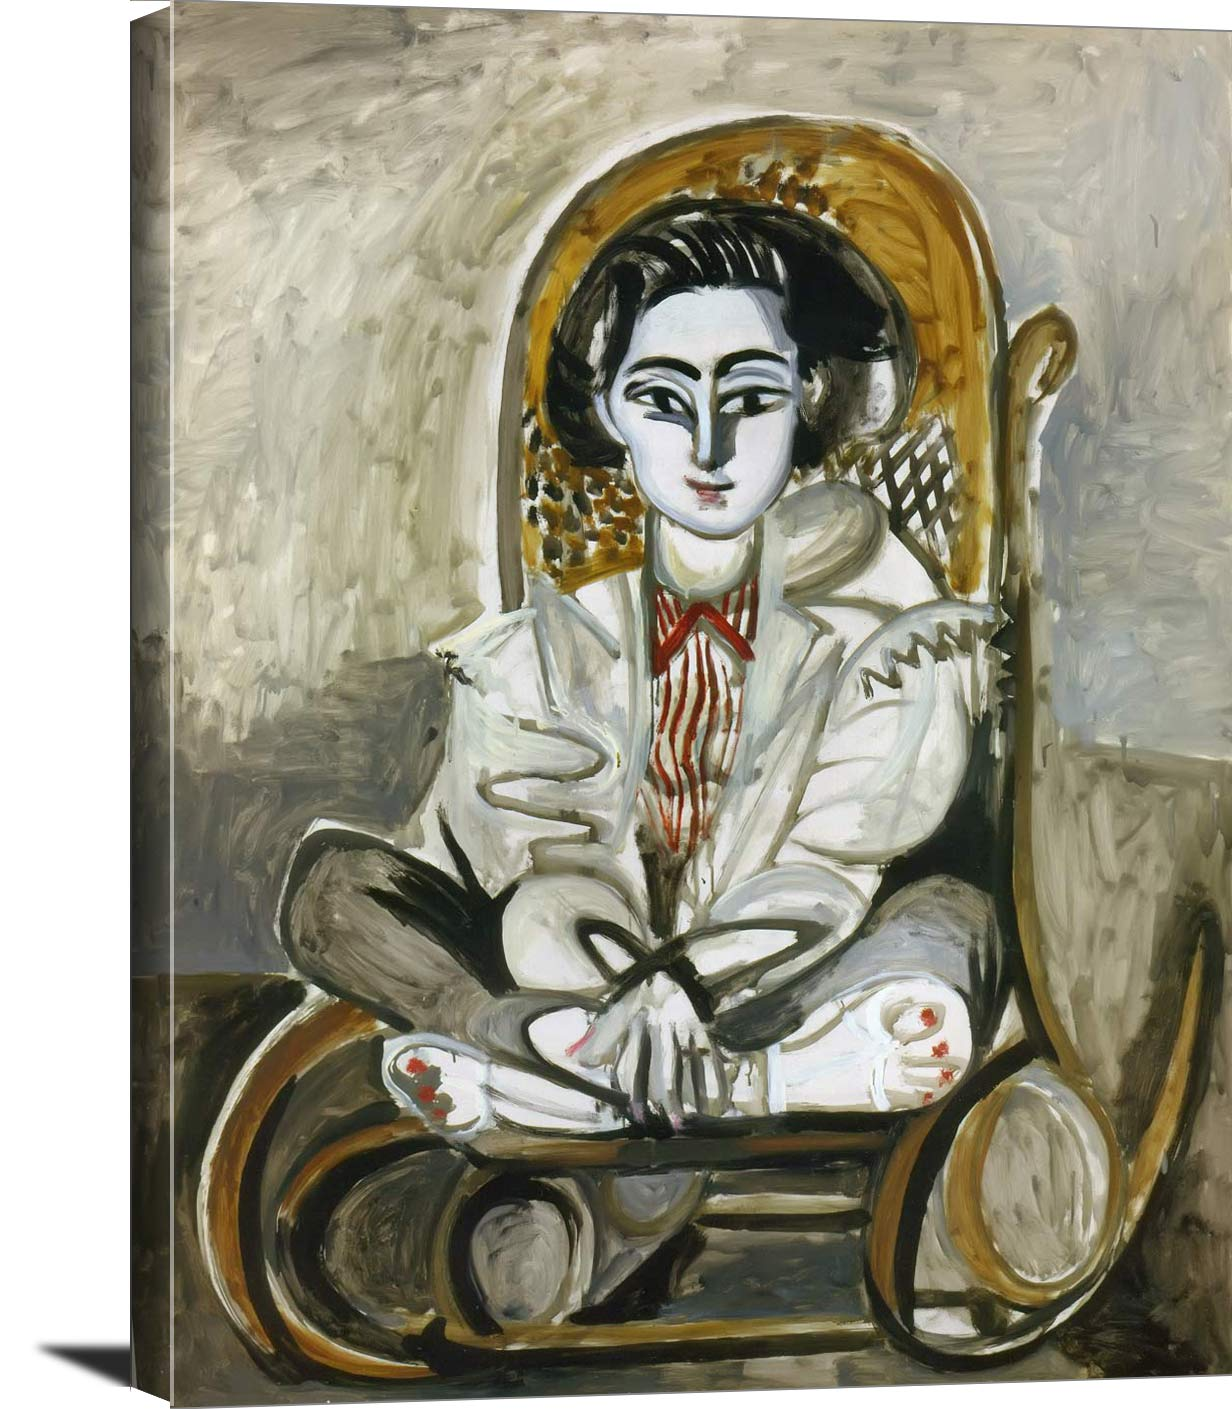 Jacqueline In A Rocking Chair Pablo Picasso